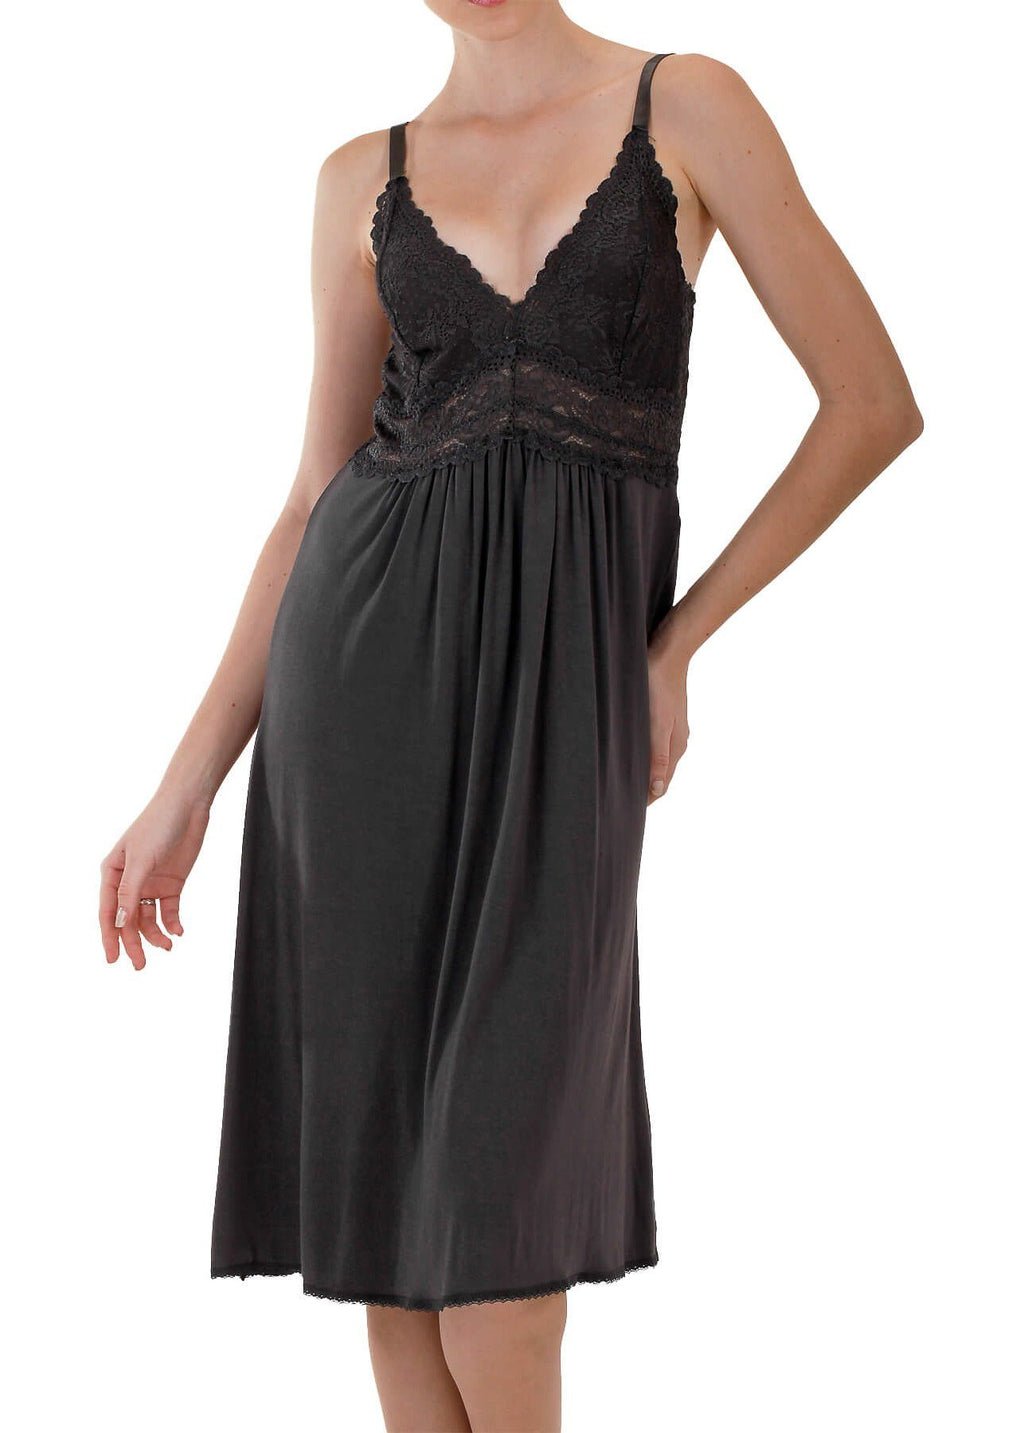 Bliss Nightgown Mystique Intimates